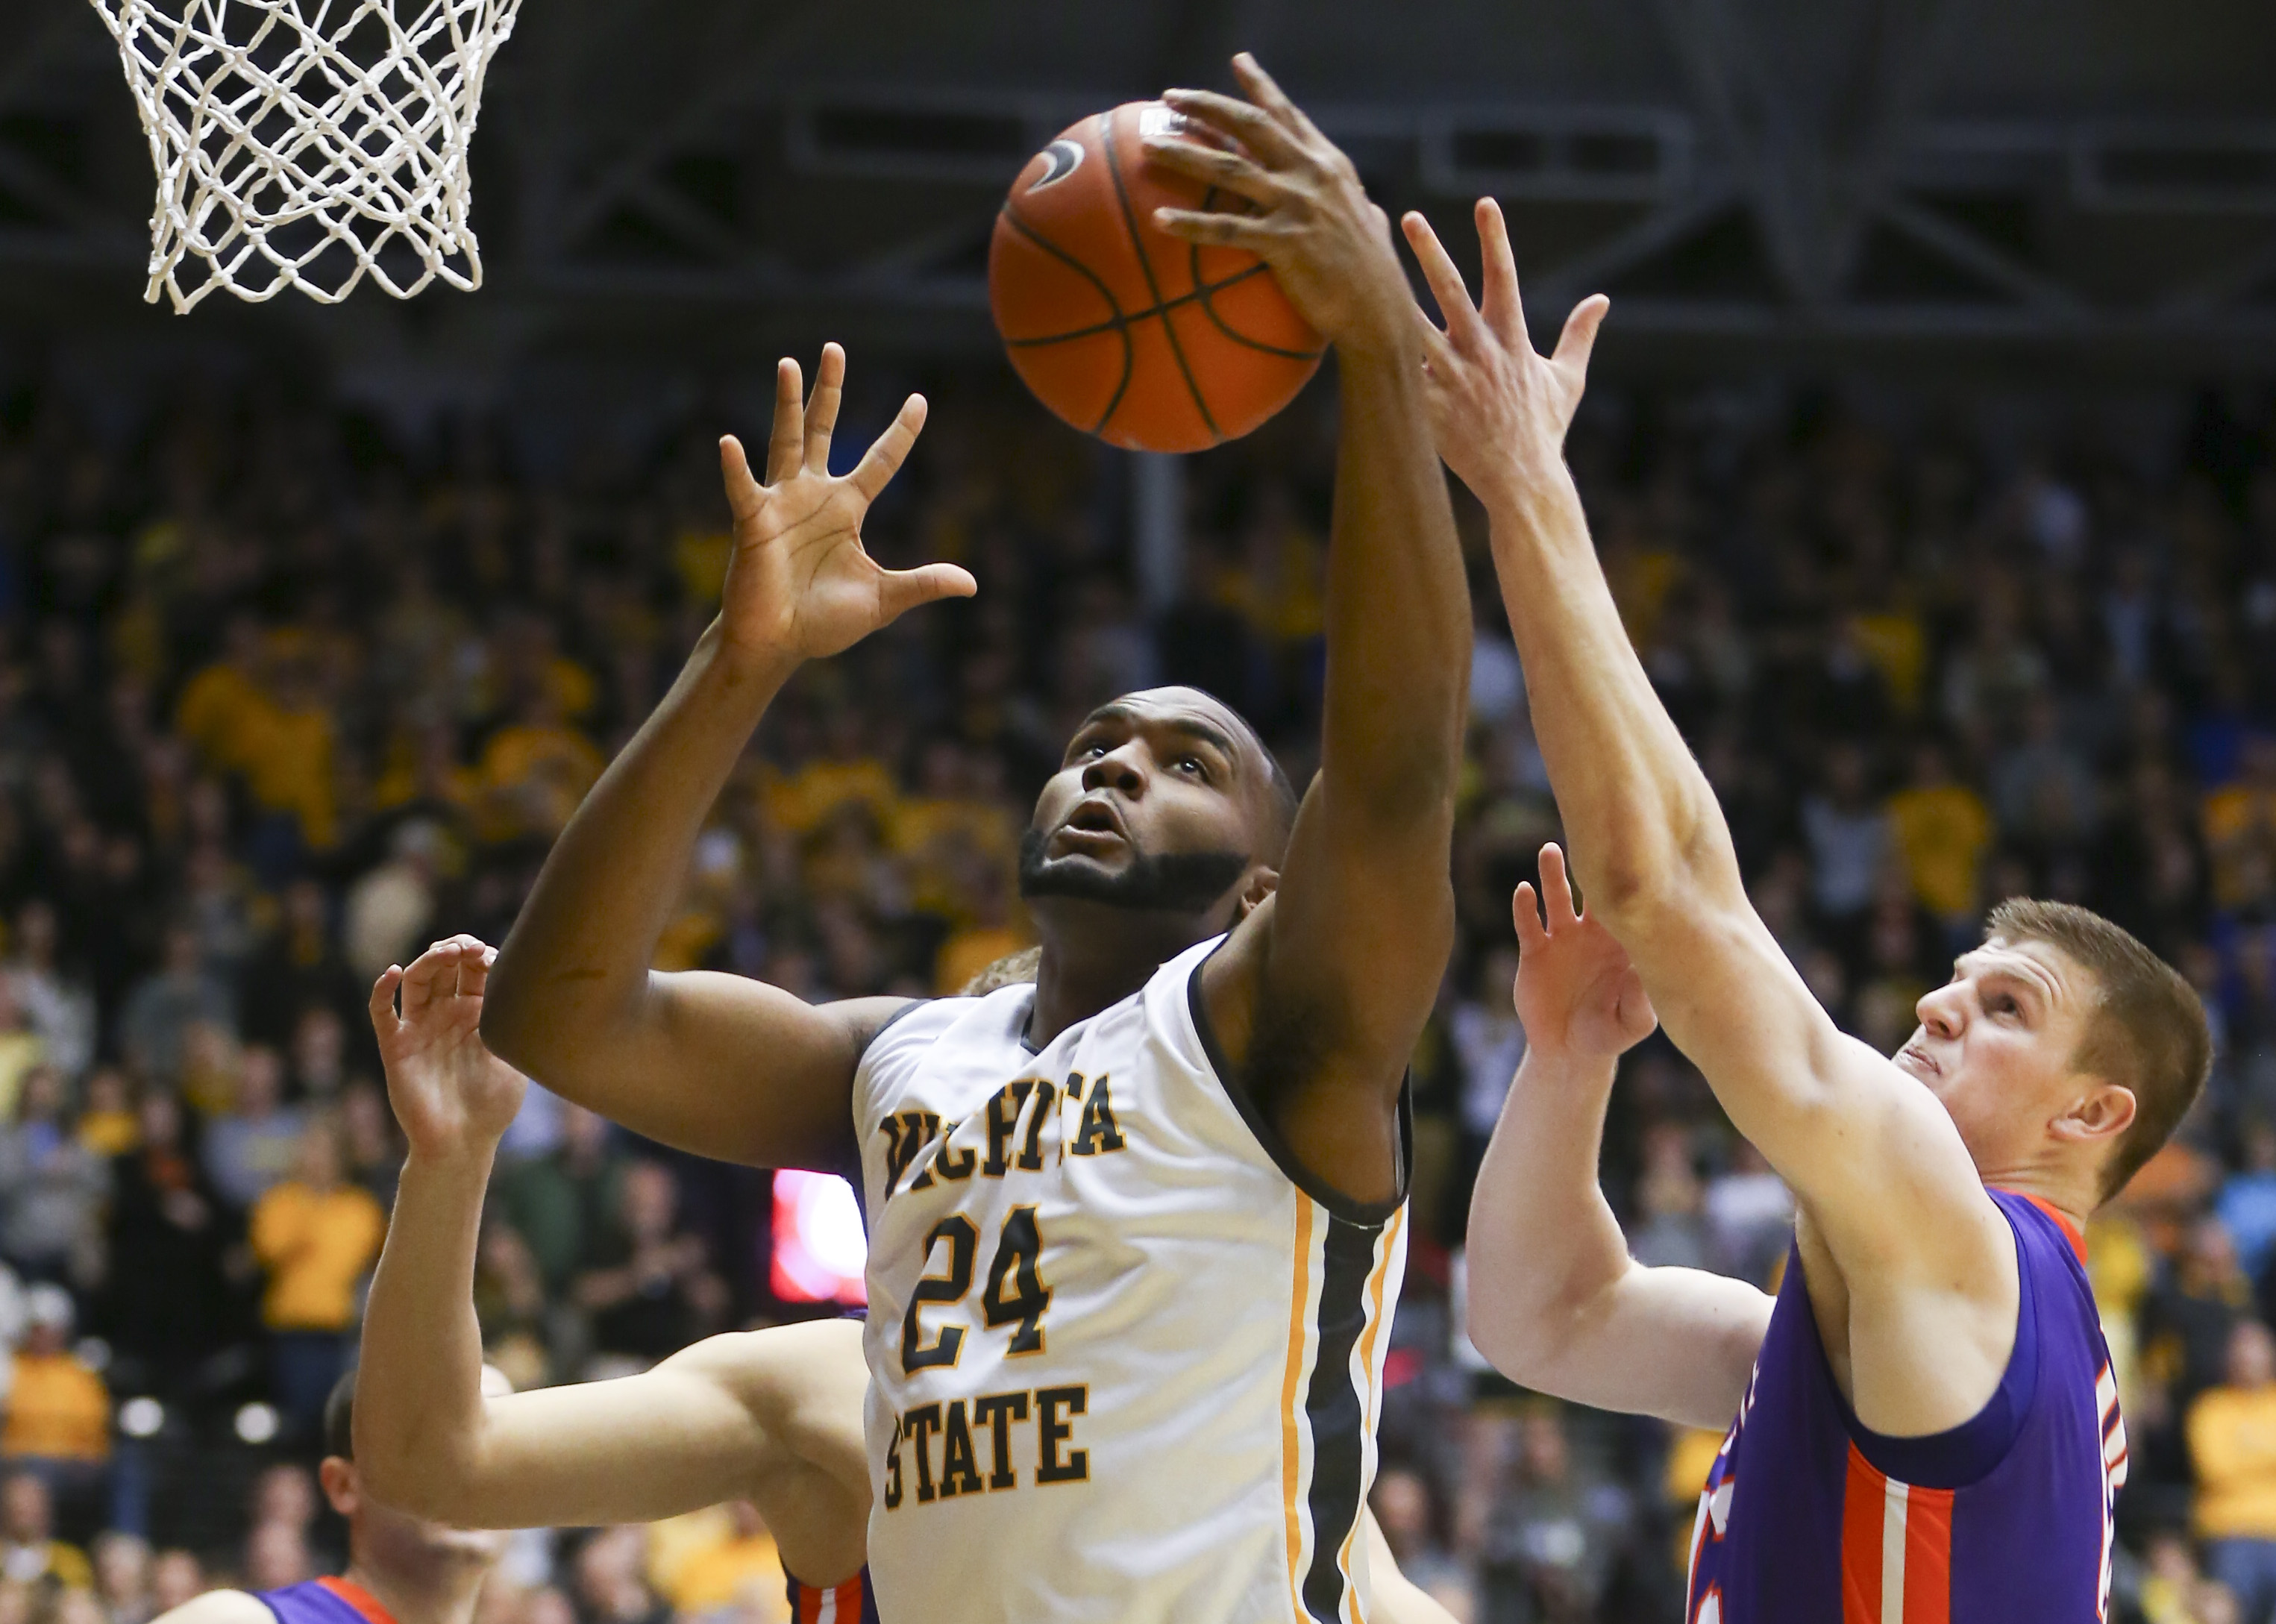 Wichita State forward Shaquille Morris grabs a rebound against Evansville guard Adam Wing during the first half of an NCAA college basketball game on Wednesday, Jan. 6. 2016 in Wichita, Kan. (Travis Heying/The Wichita Eagle via AP)